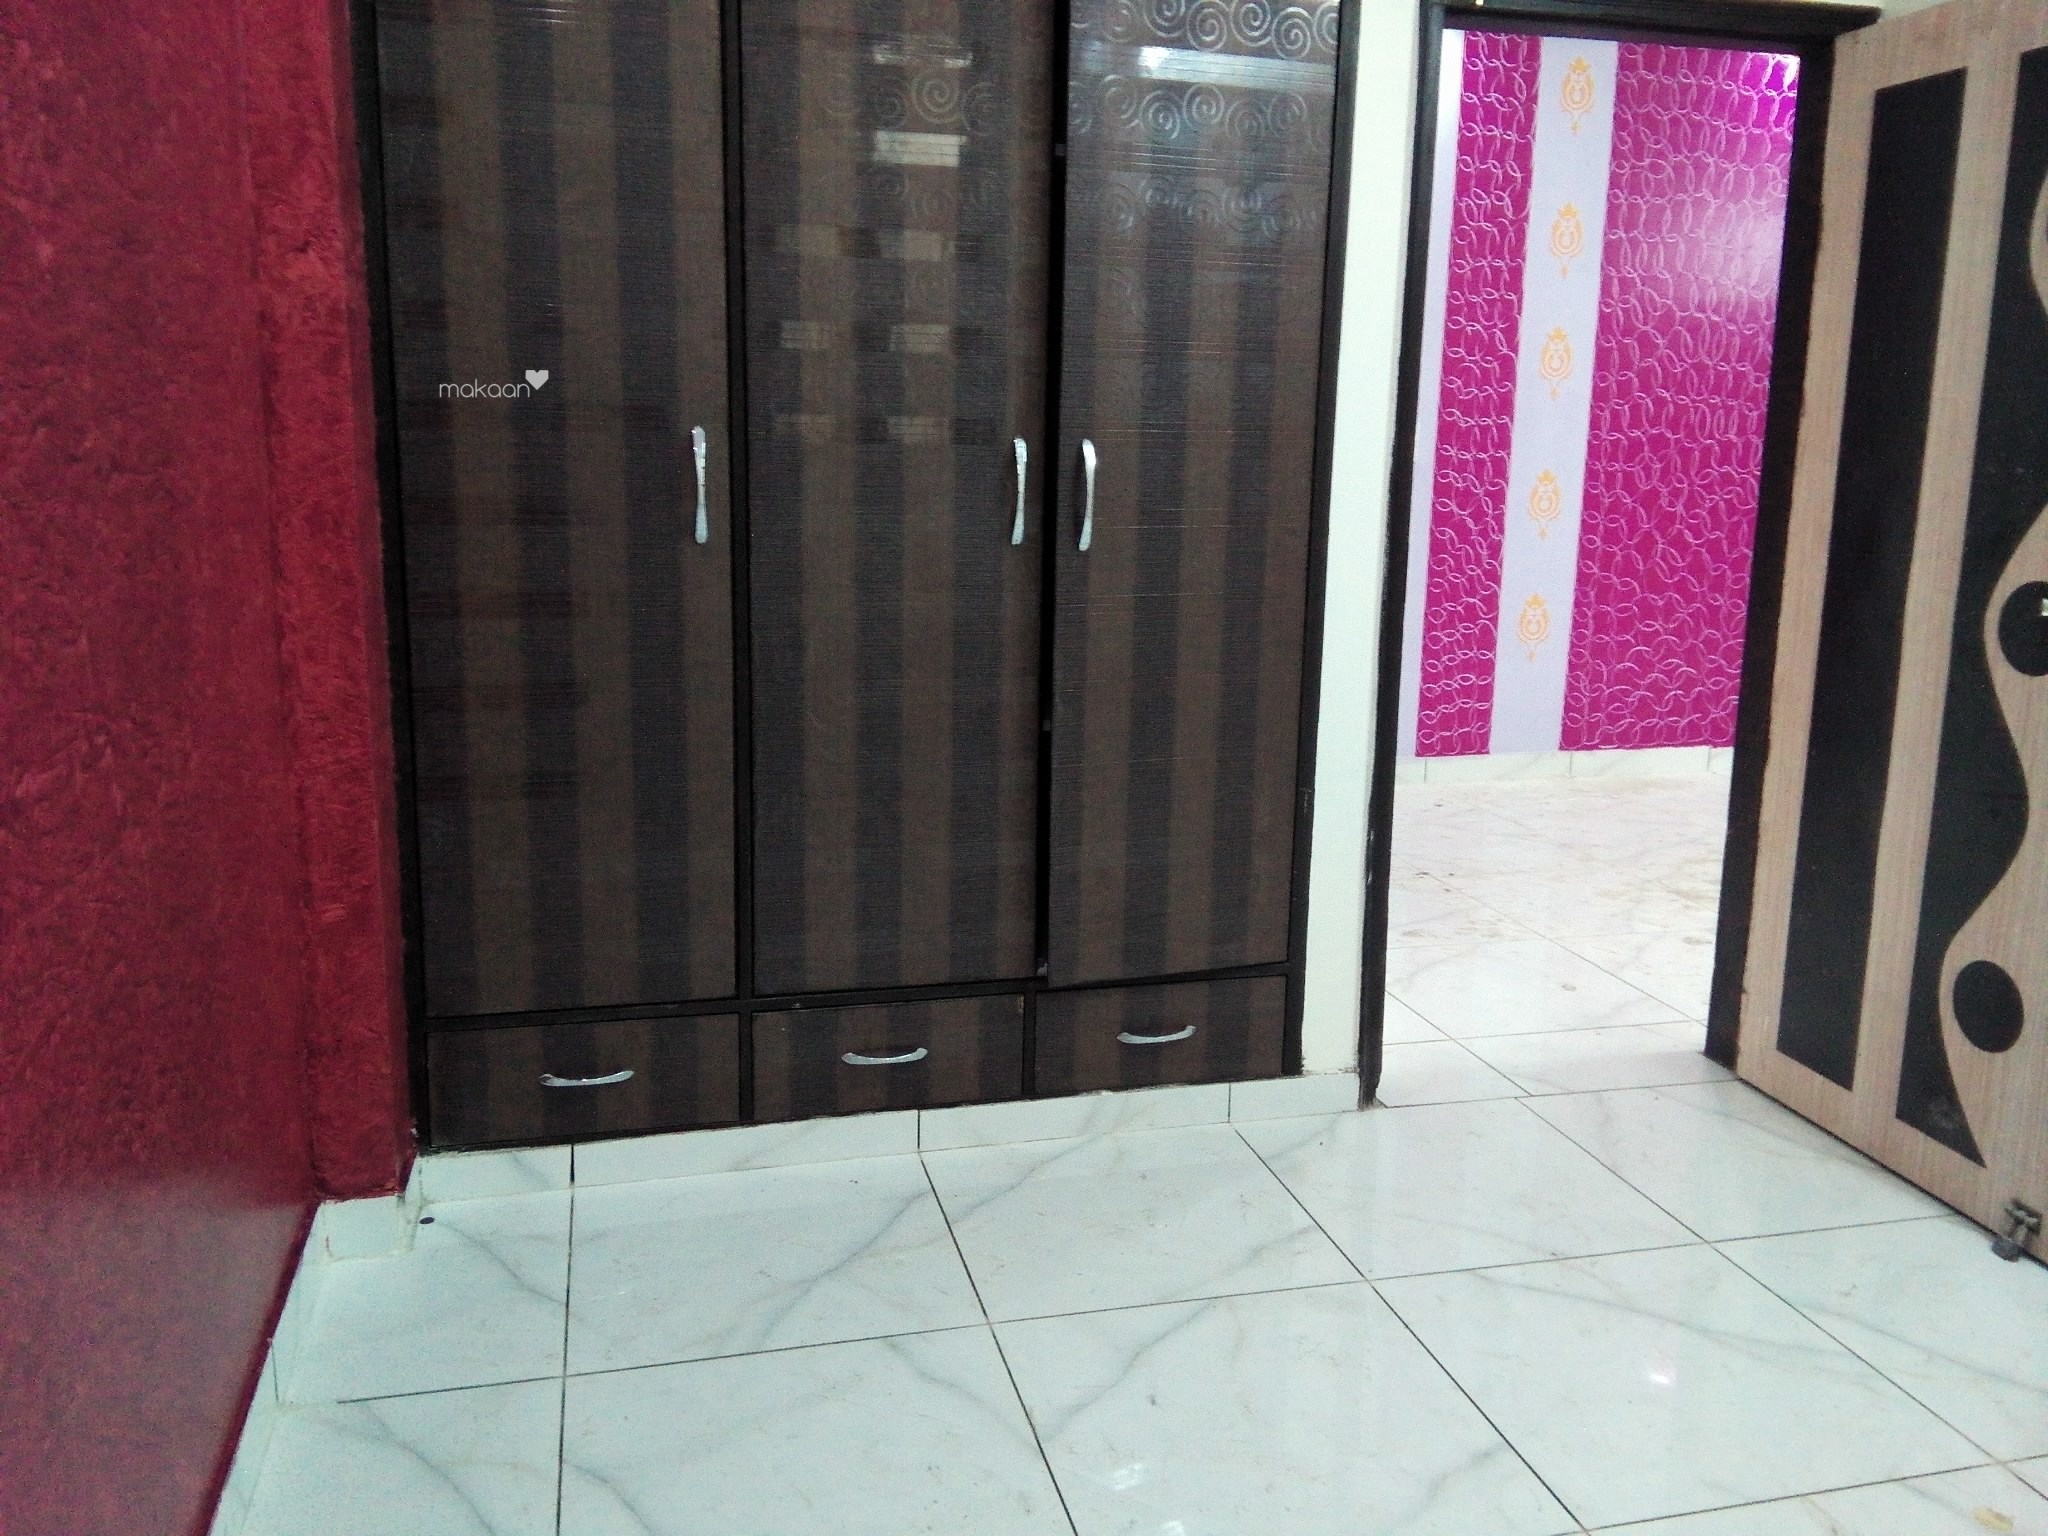 860 sq ft 2BHK 2BHK+2T (860 sq ft) Property By Demera Homz In Project, Sector 2 Vaishali